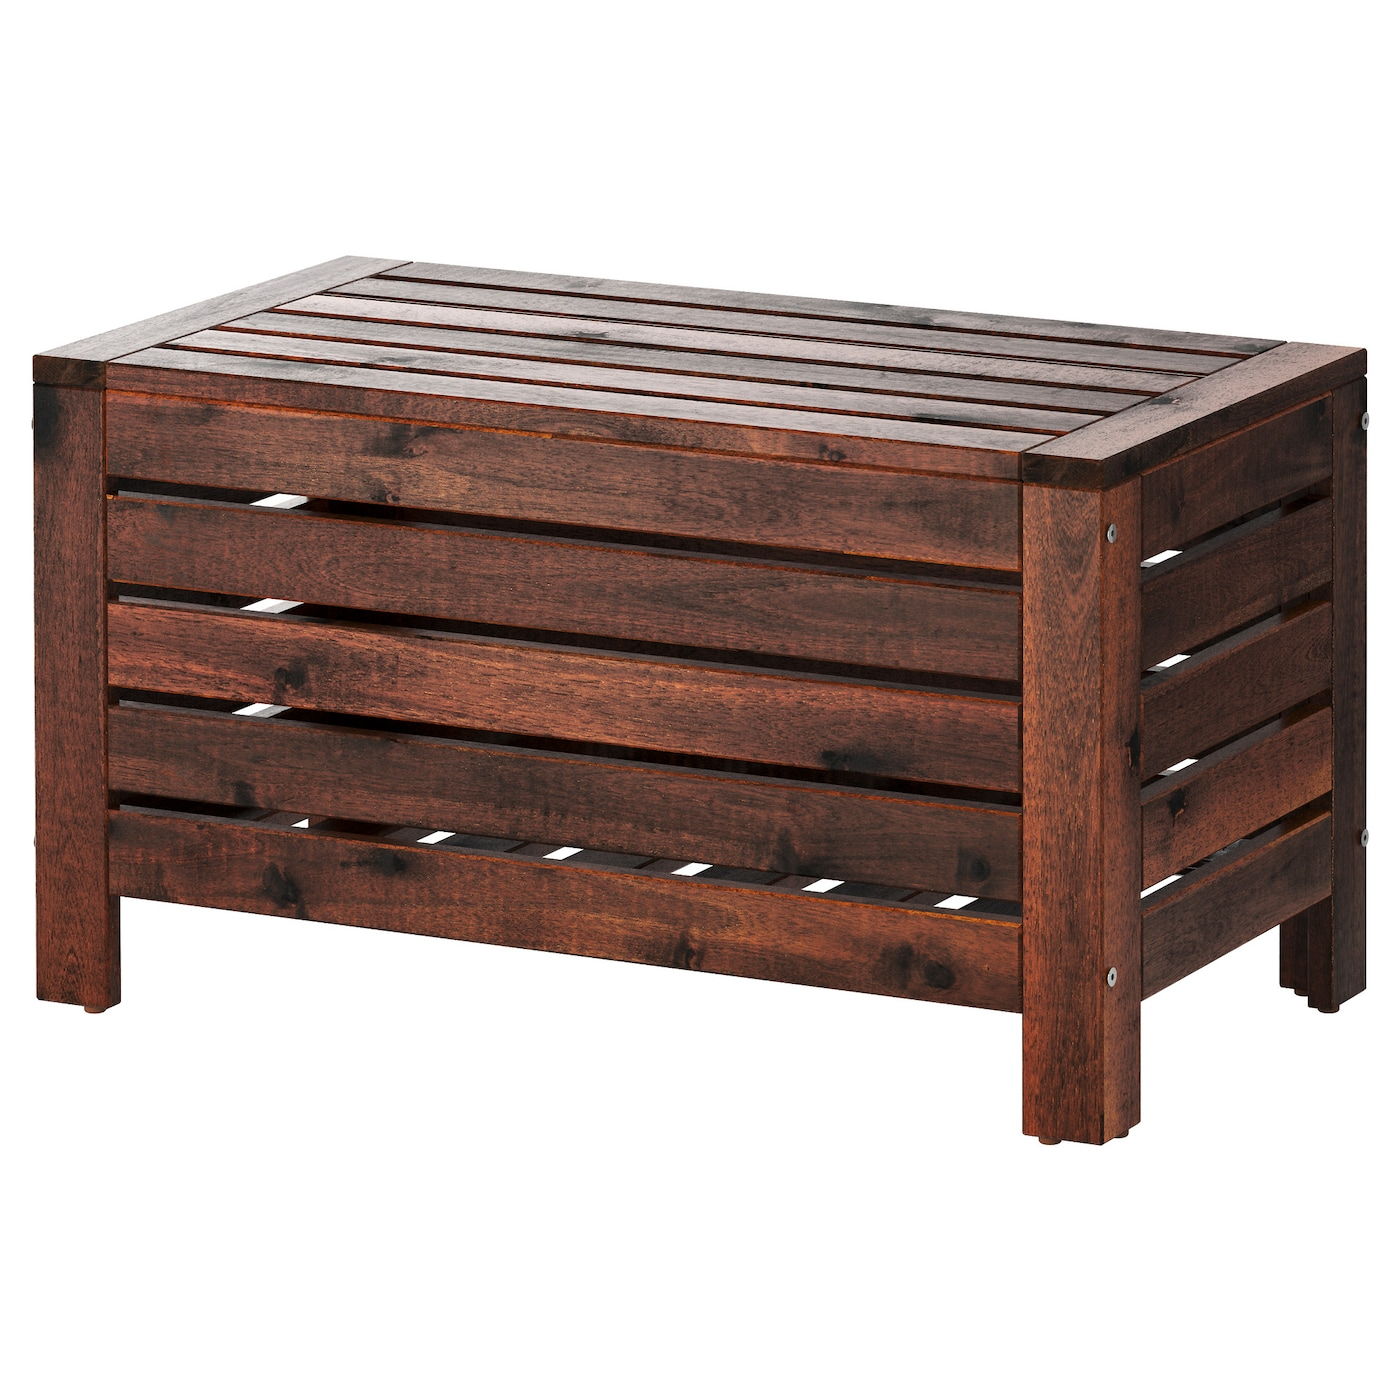 Pplar storage bench outdoor brown stained 80x41 cm ikea Yard bench